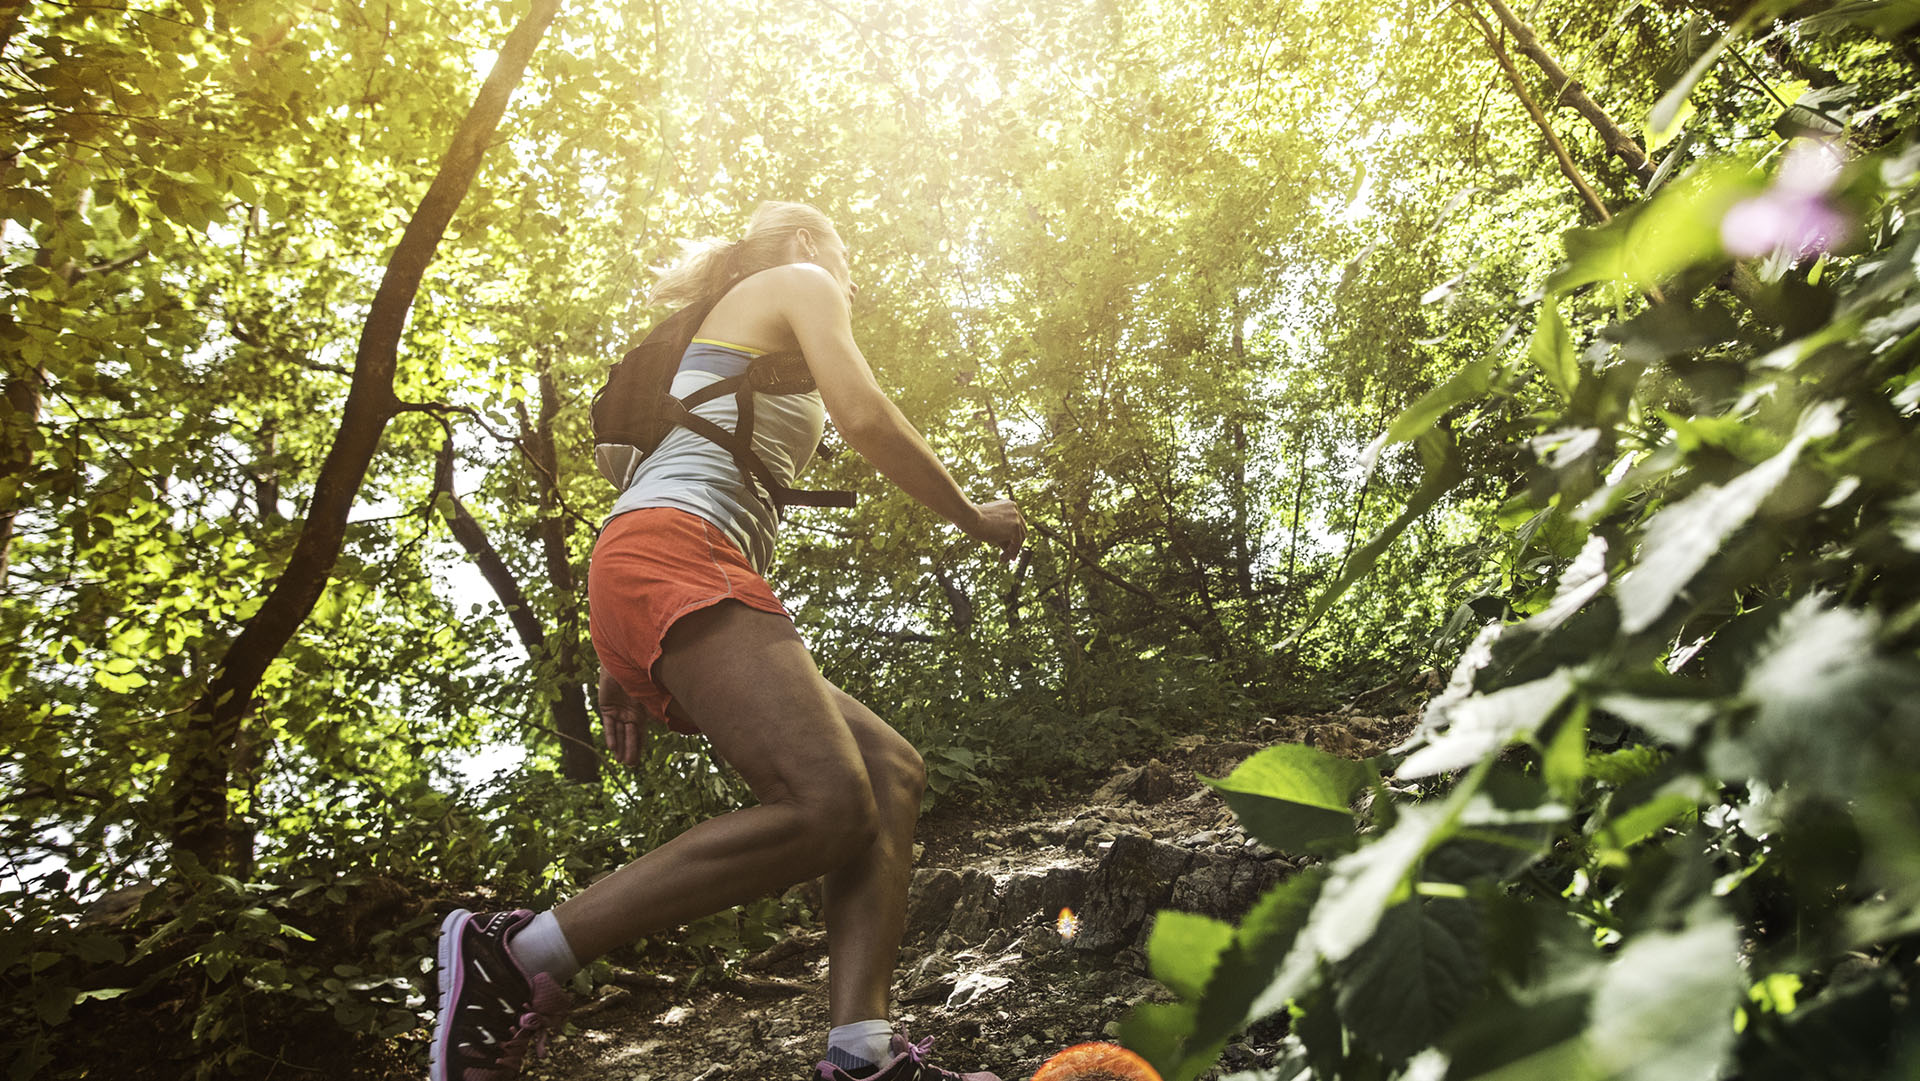 Female runner going uphill on a rocky forest path.